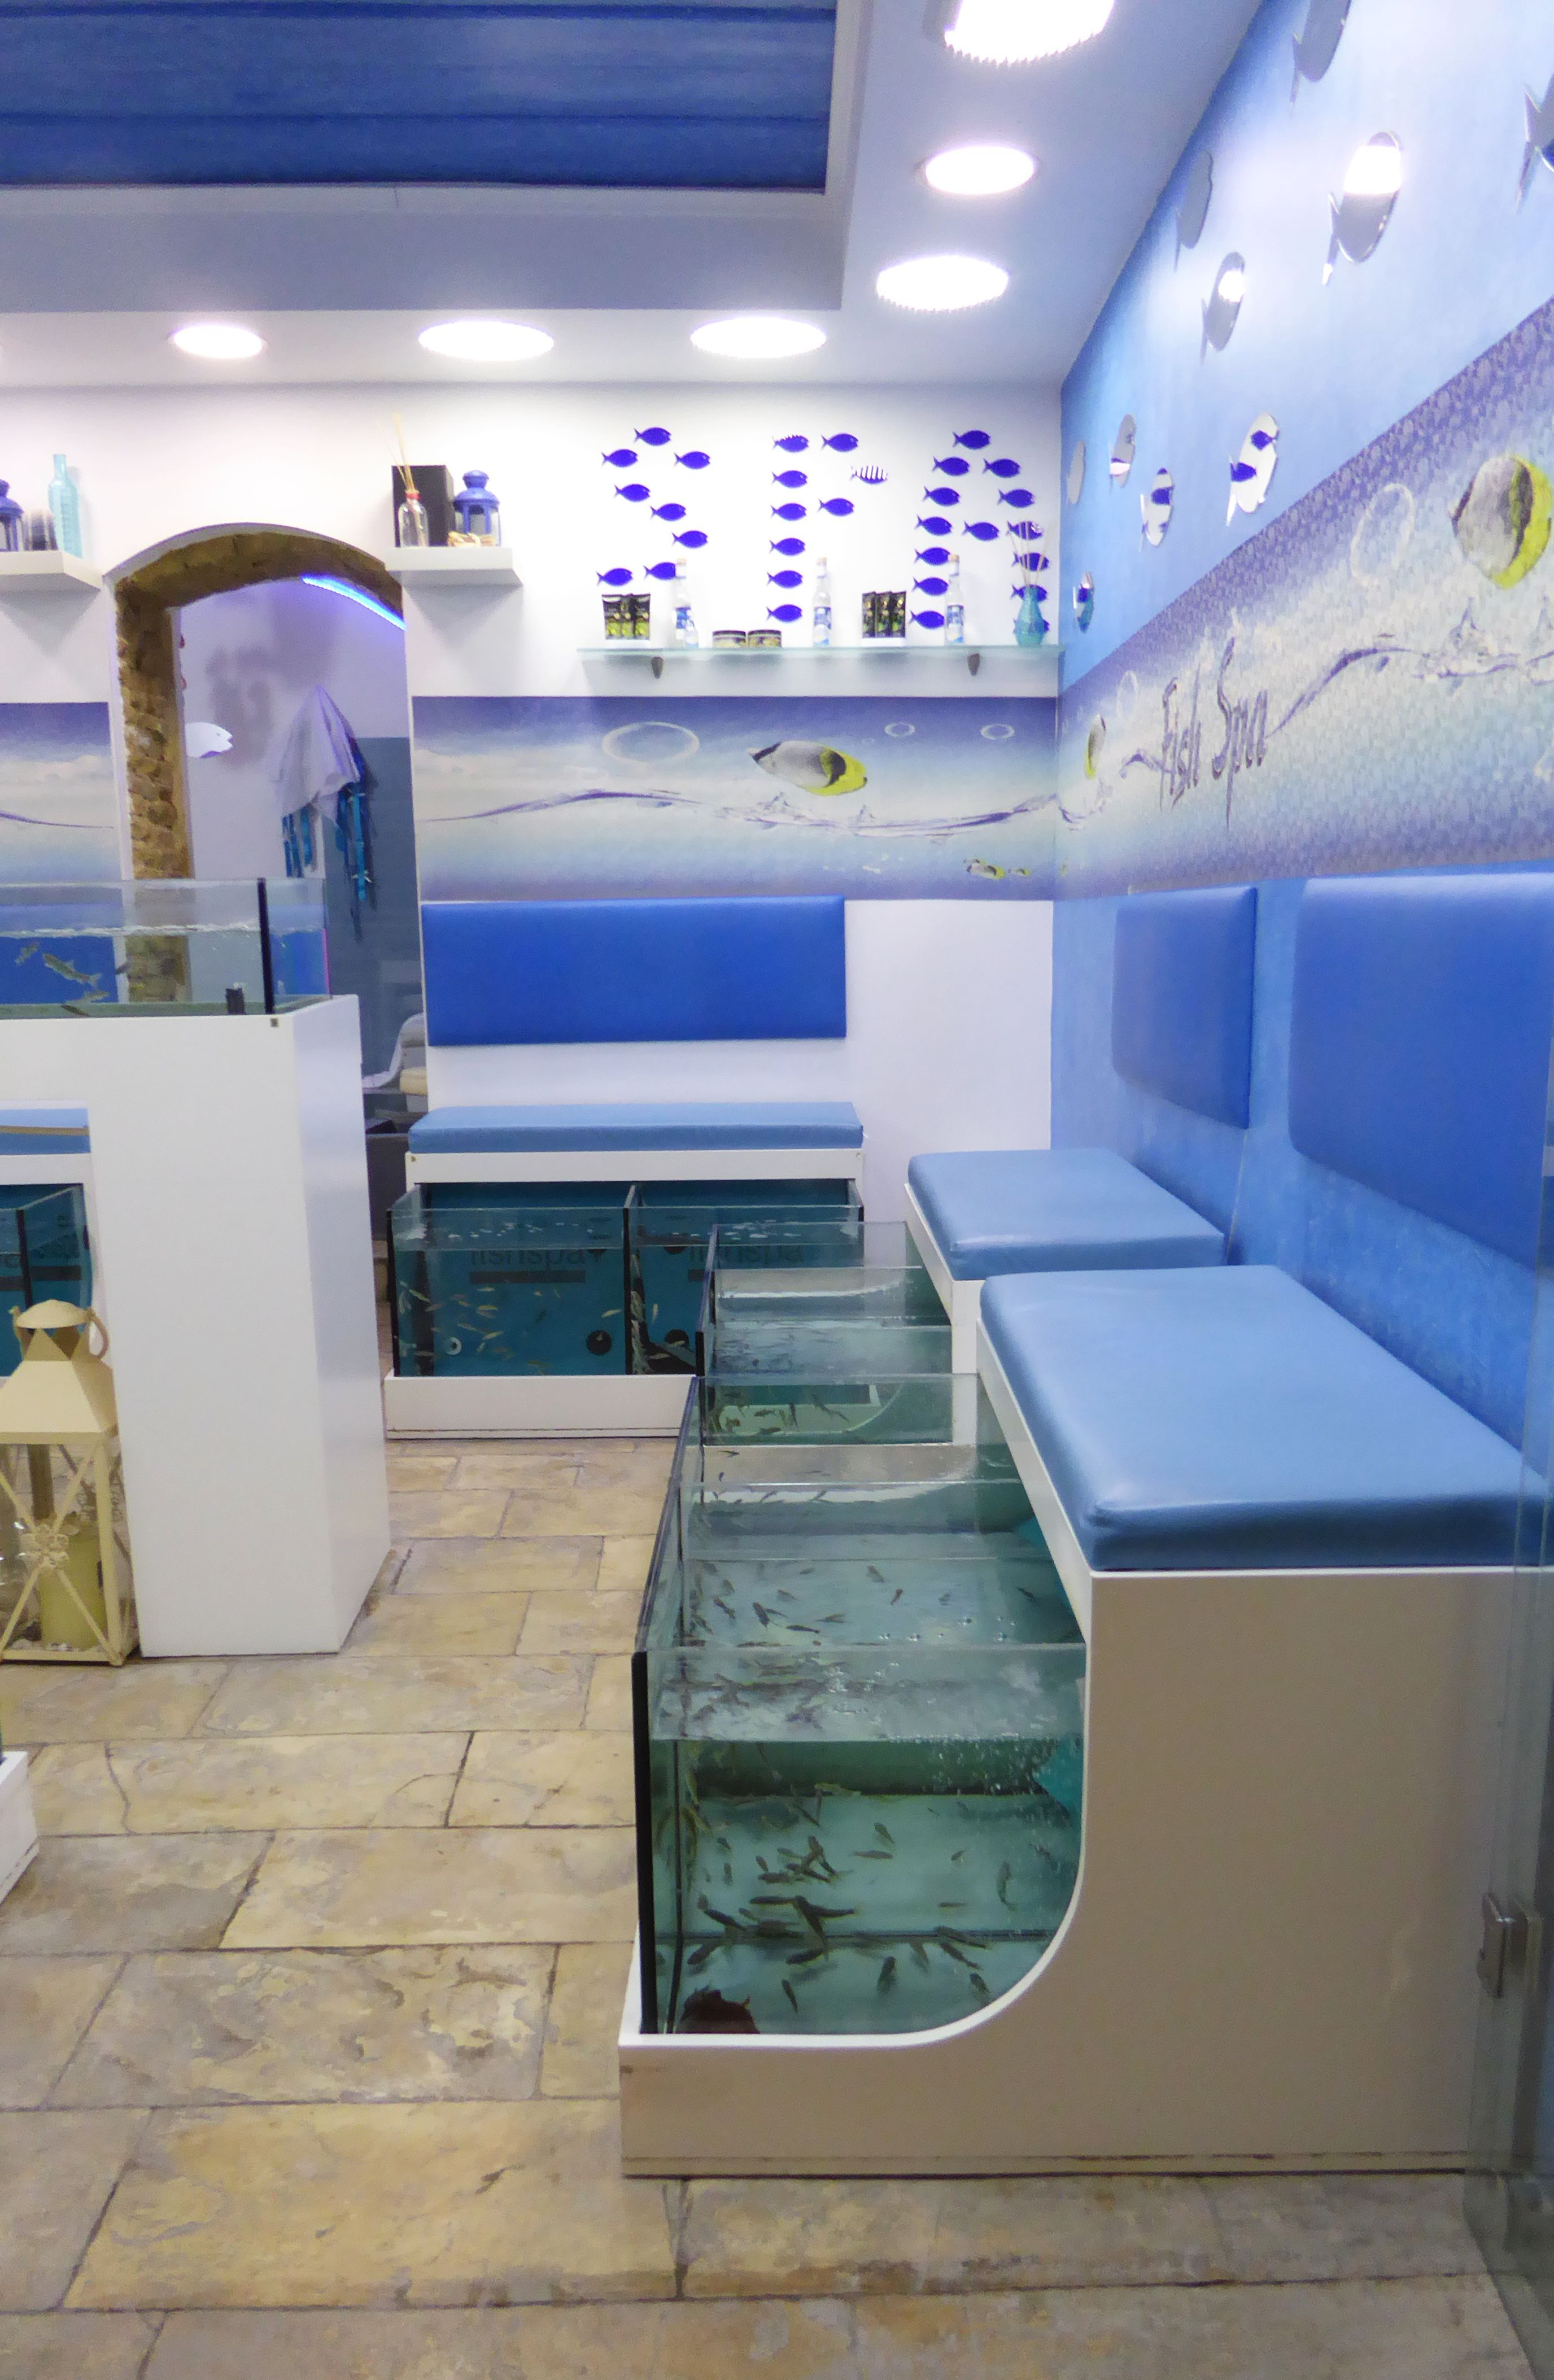 Freshwater fish medicine - Fish Spa Pedicures During A Treatment Customers Place Their Feet In Tanks Of Warm Freshwater